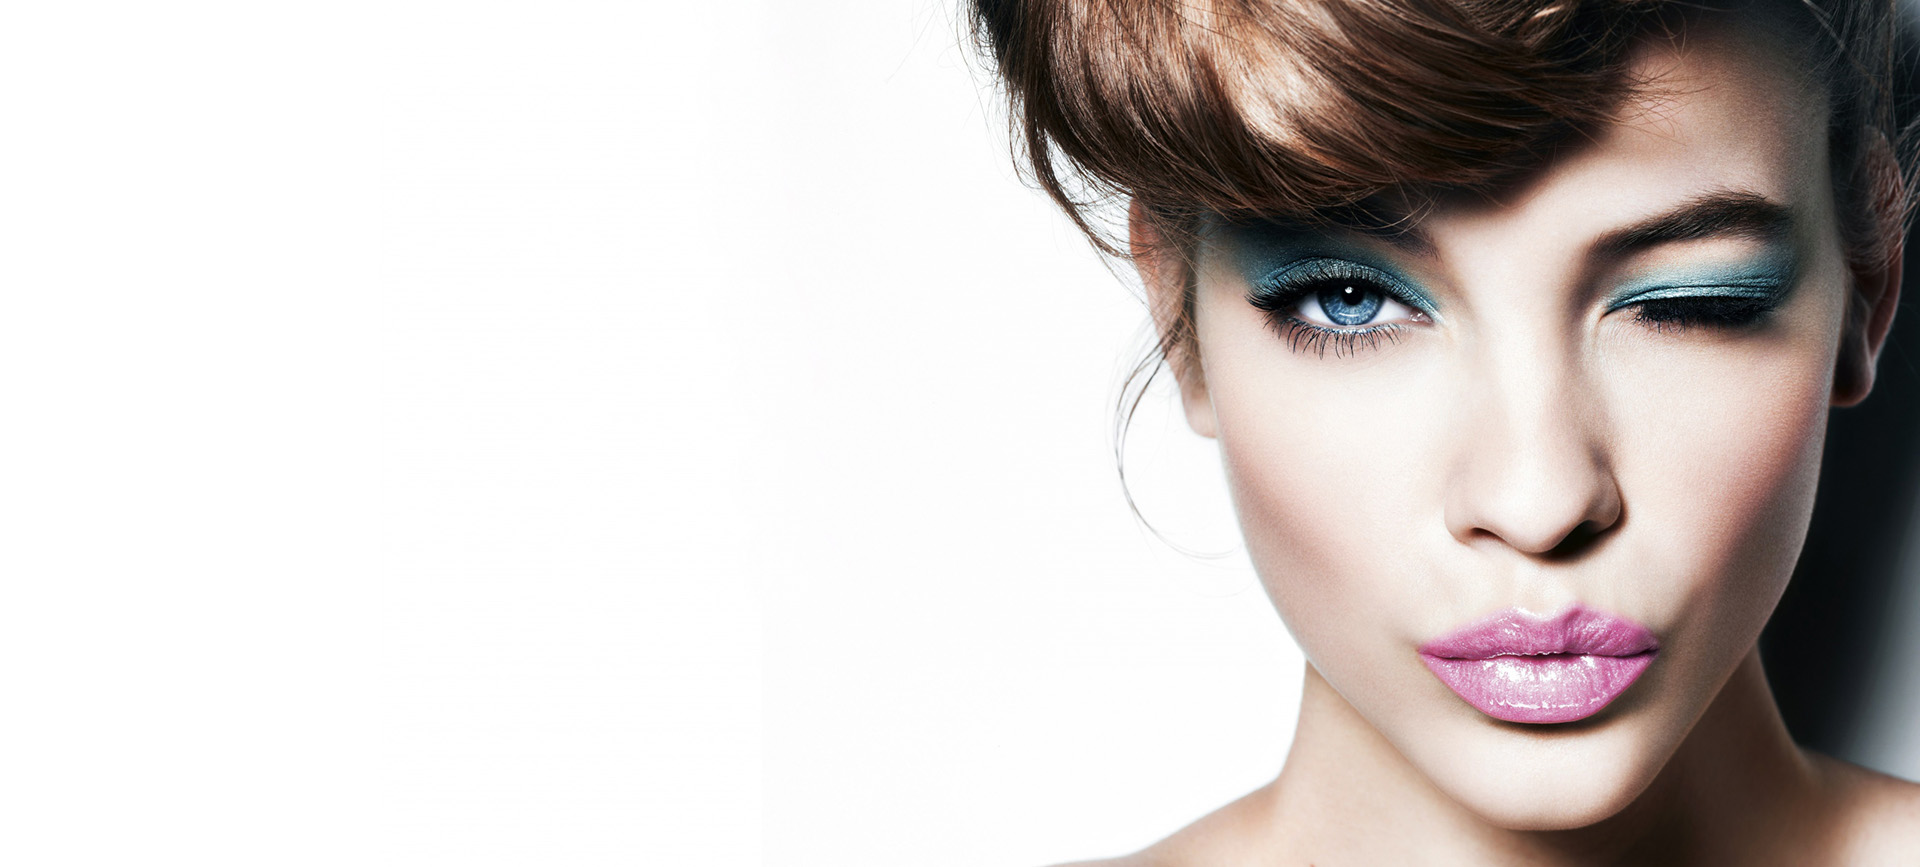 makeup-wallpaper-23232-23884-hd-wallpapers.jpg